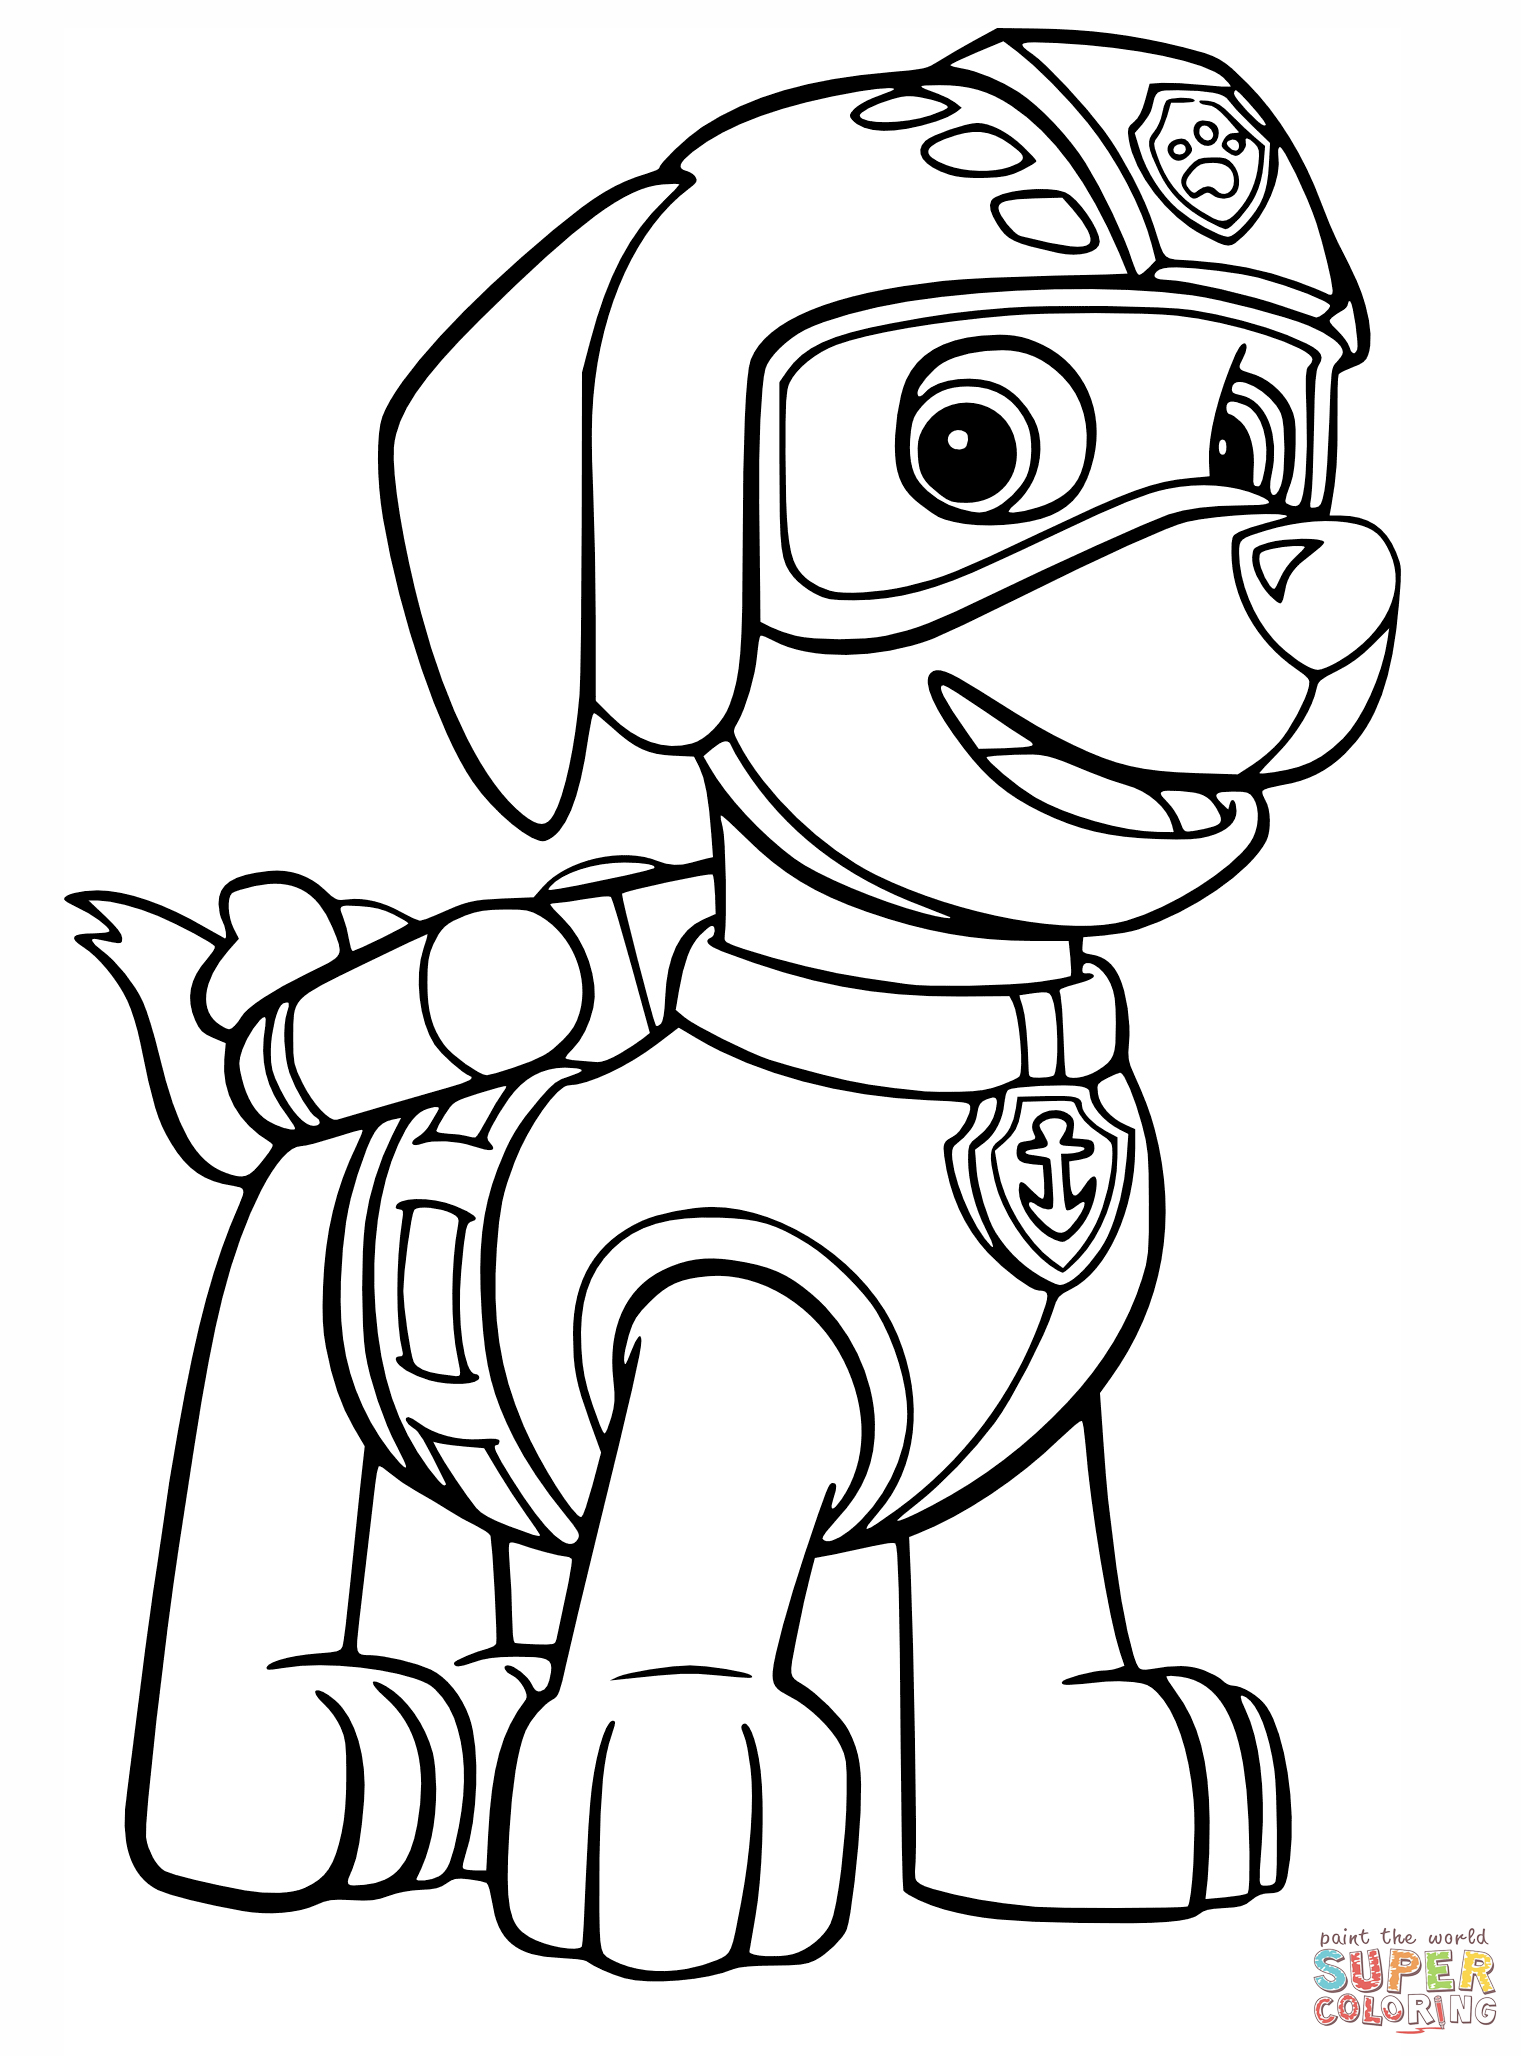 PAW Patrol coloring pages | Free Coloring Pages